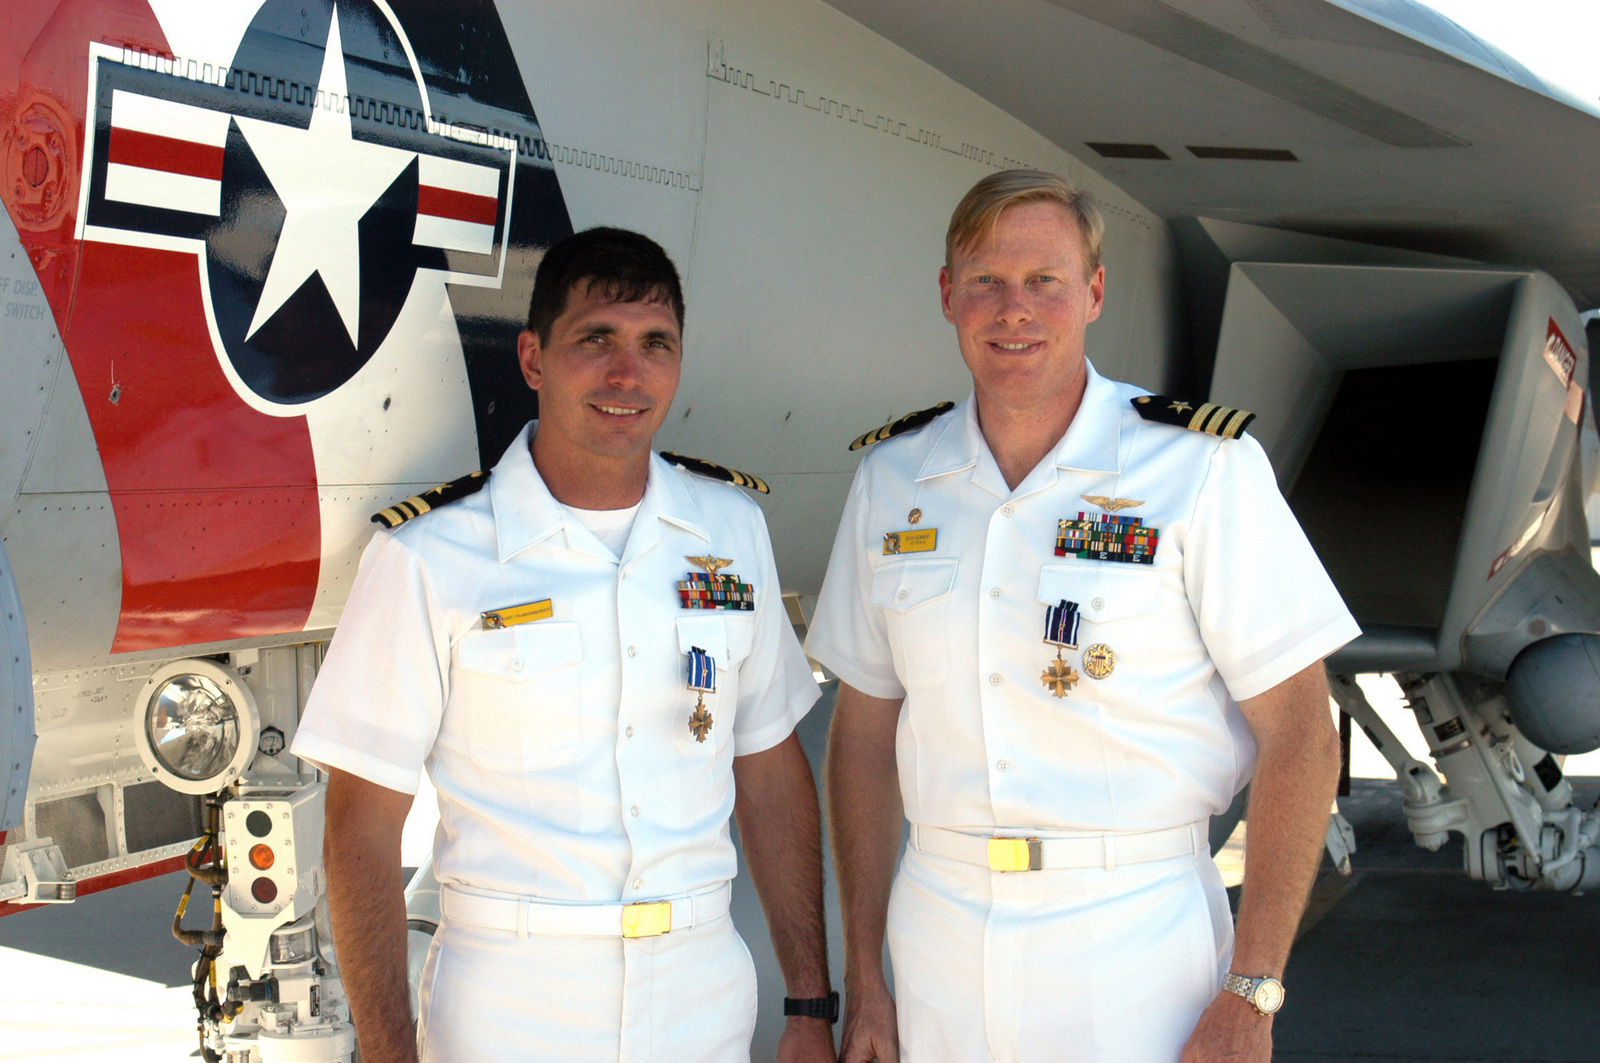 US Navy (USN) Lieutenant Commander (LCDR) Kurt Frankenberger (left), and USN Commander (CDR) Doug Denneny, both assigned to Strike Fighter Squadron Two (VFA-2), pose for a photograph standing in front of a USN F/A-18F Super Hornet aircraft, after being awarded the Distinguished Flying Cross with Valor, during a Ceremony held aboard Naval Air Station (NAS) Lemoore, California (CA). The Navy Officers distinguished themselves during combat action flown in support of Operation IRAQI FREEDDOM (OIF)